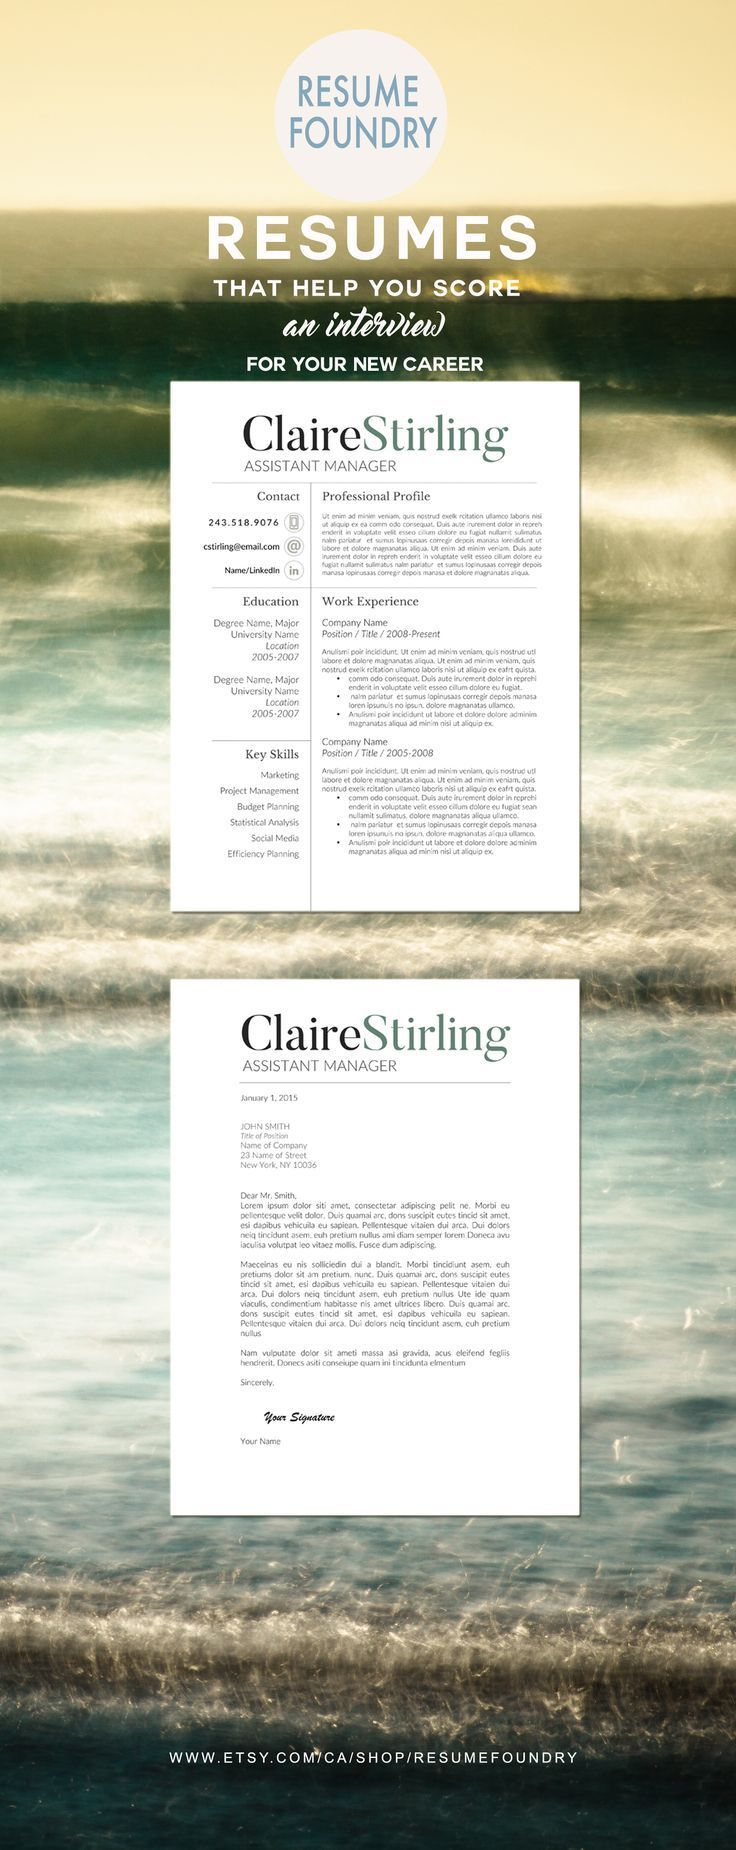 medical billing resumes%0A We hope this creative resume template is the wave of change for your career